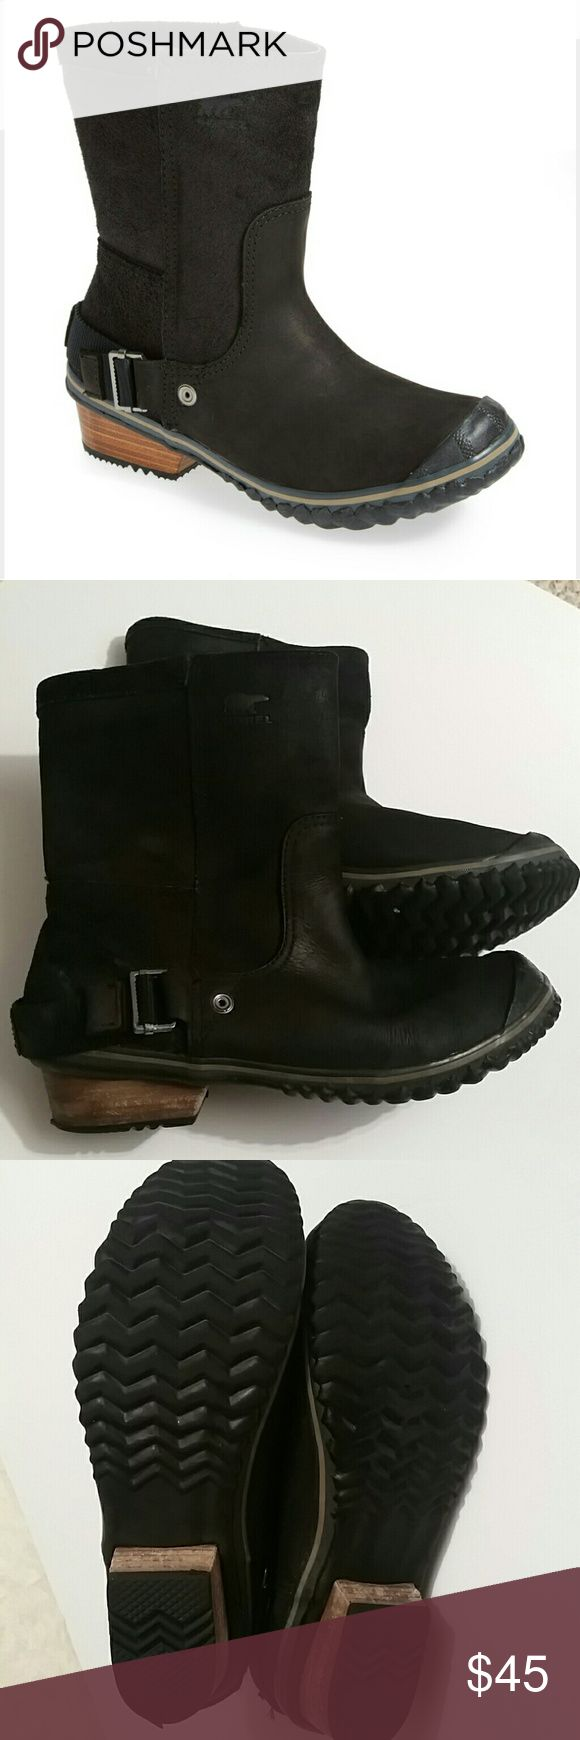 Sorel Black Slimshortie Boot Waterproof black boots with rubber toe.  Engineer style with slight heel. Worn, but still in great condition!  Women's size 8.5 Sorel Shoes Winter & Rain Boots